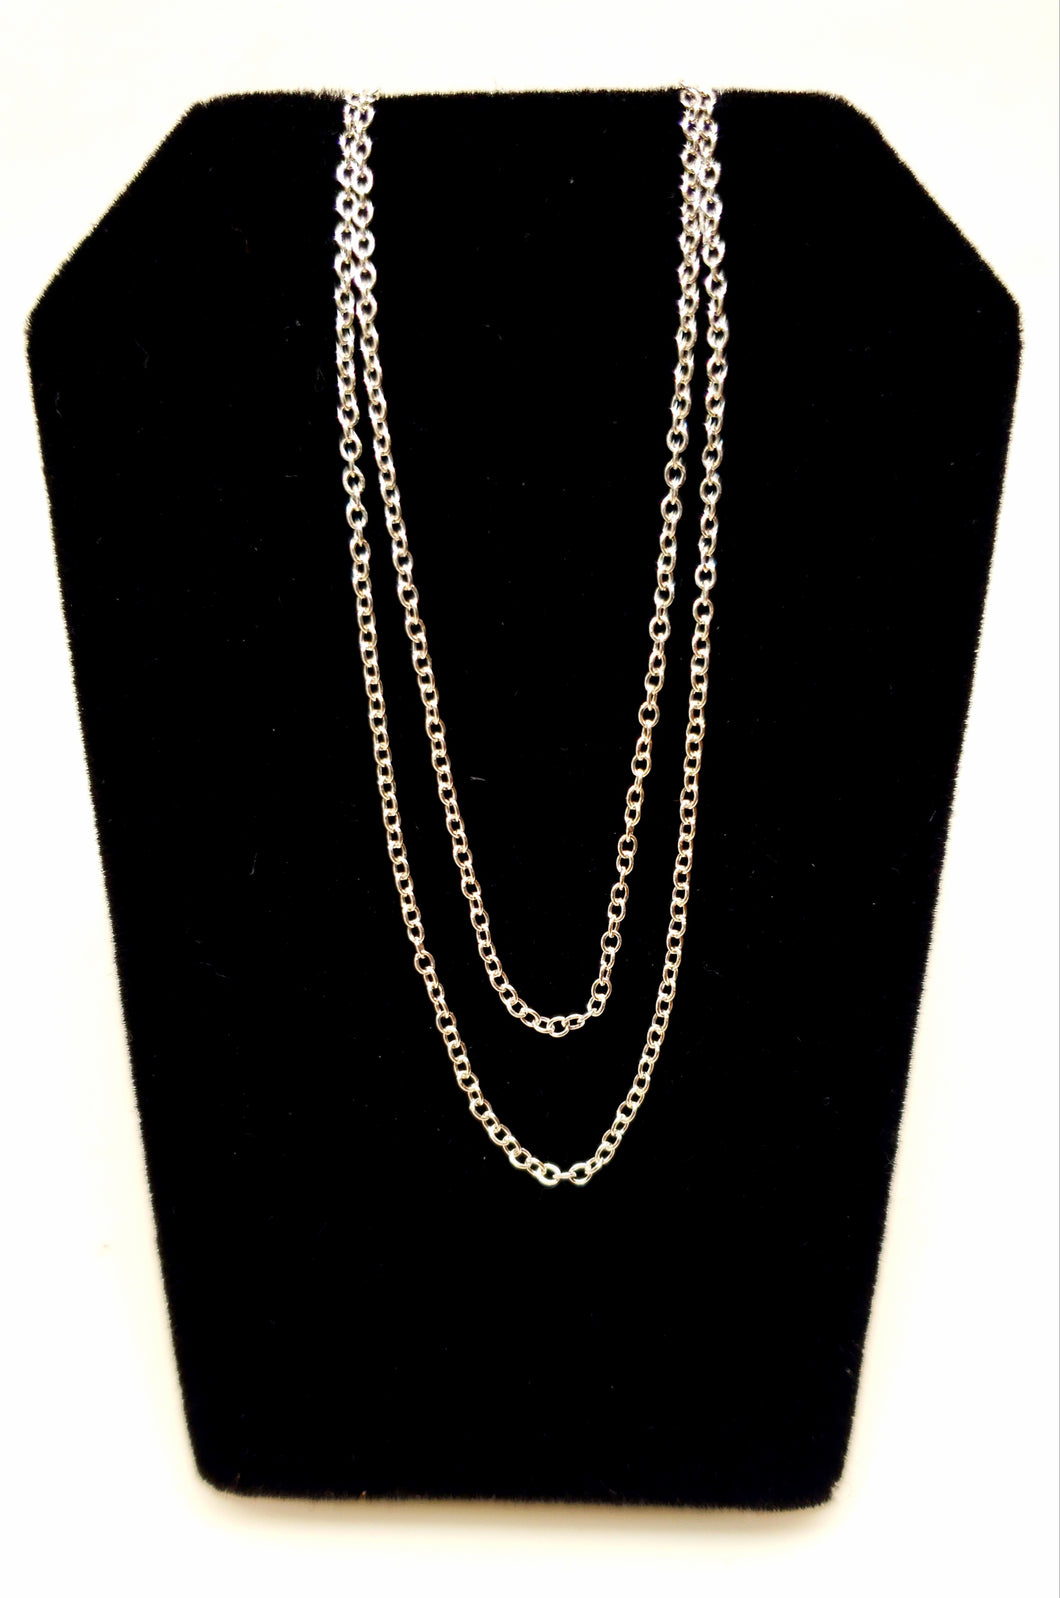 Sterling Silver Chain - 18 inch necklace - Joy#196